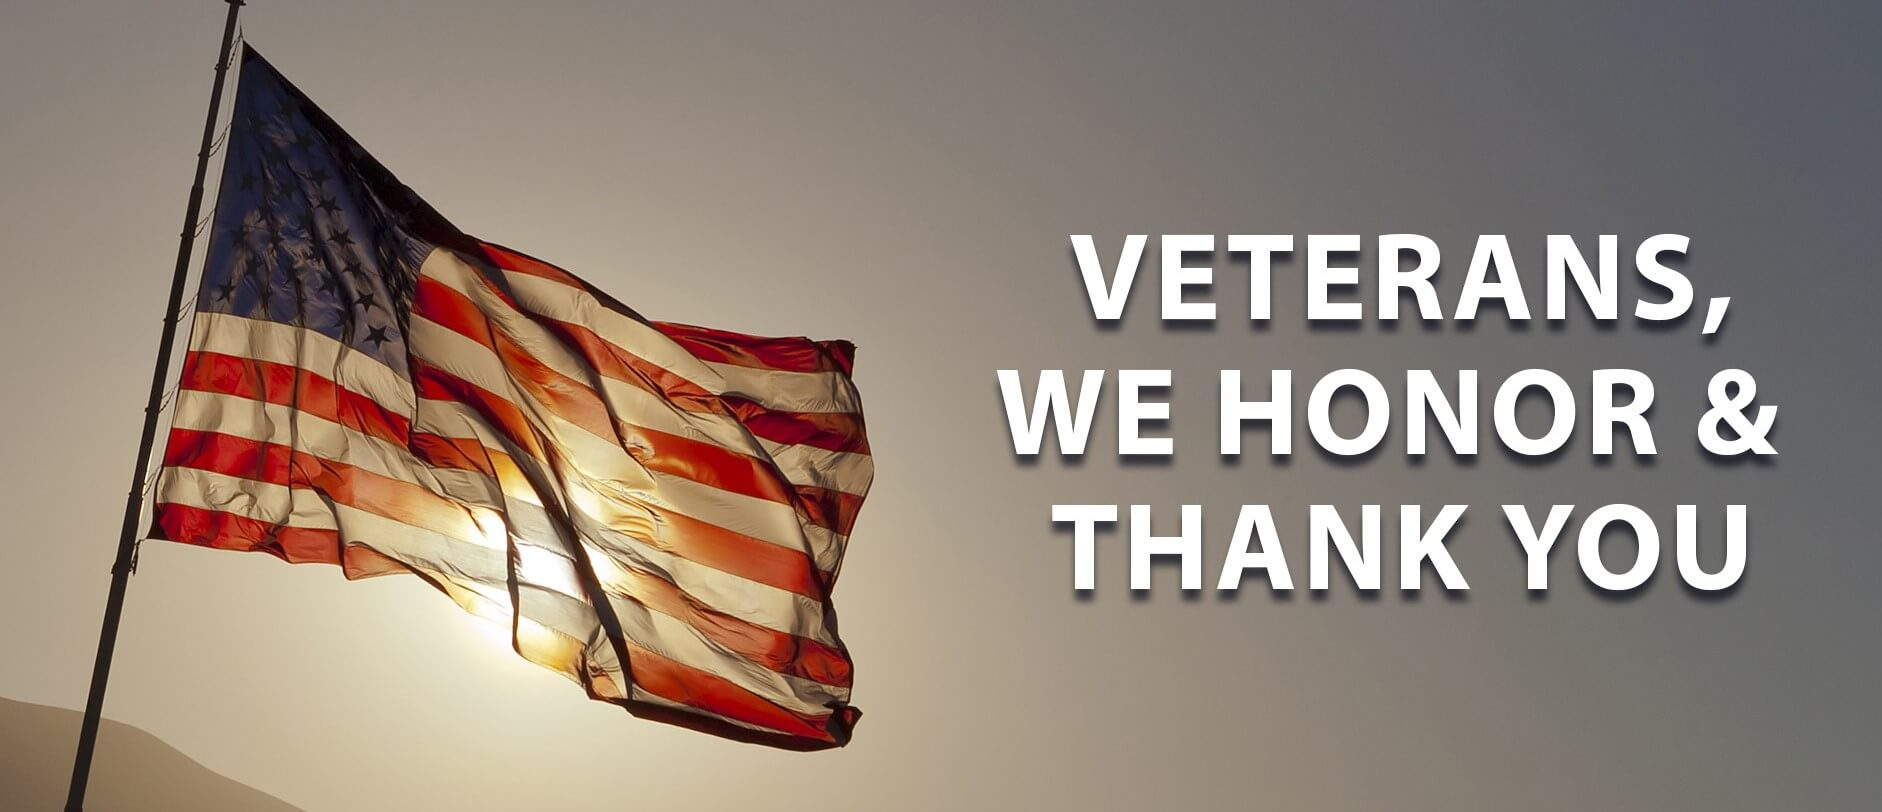 Veterans, we honor and thank you